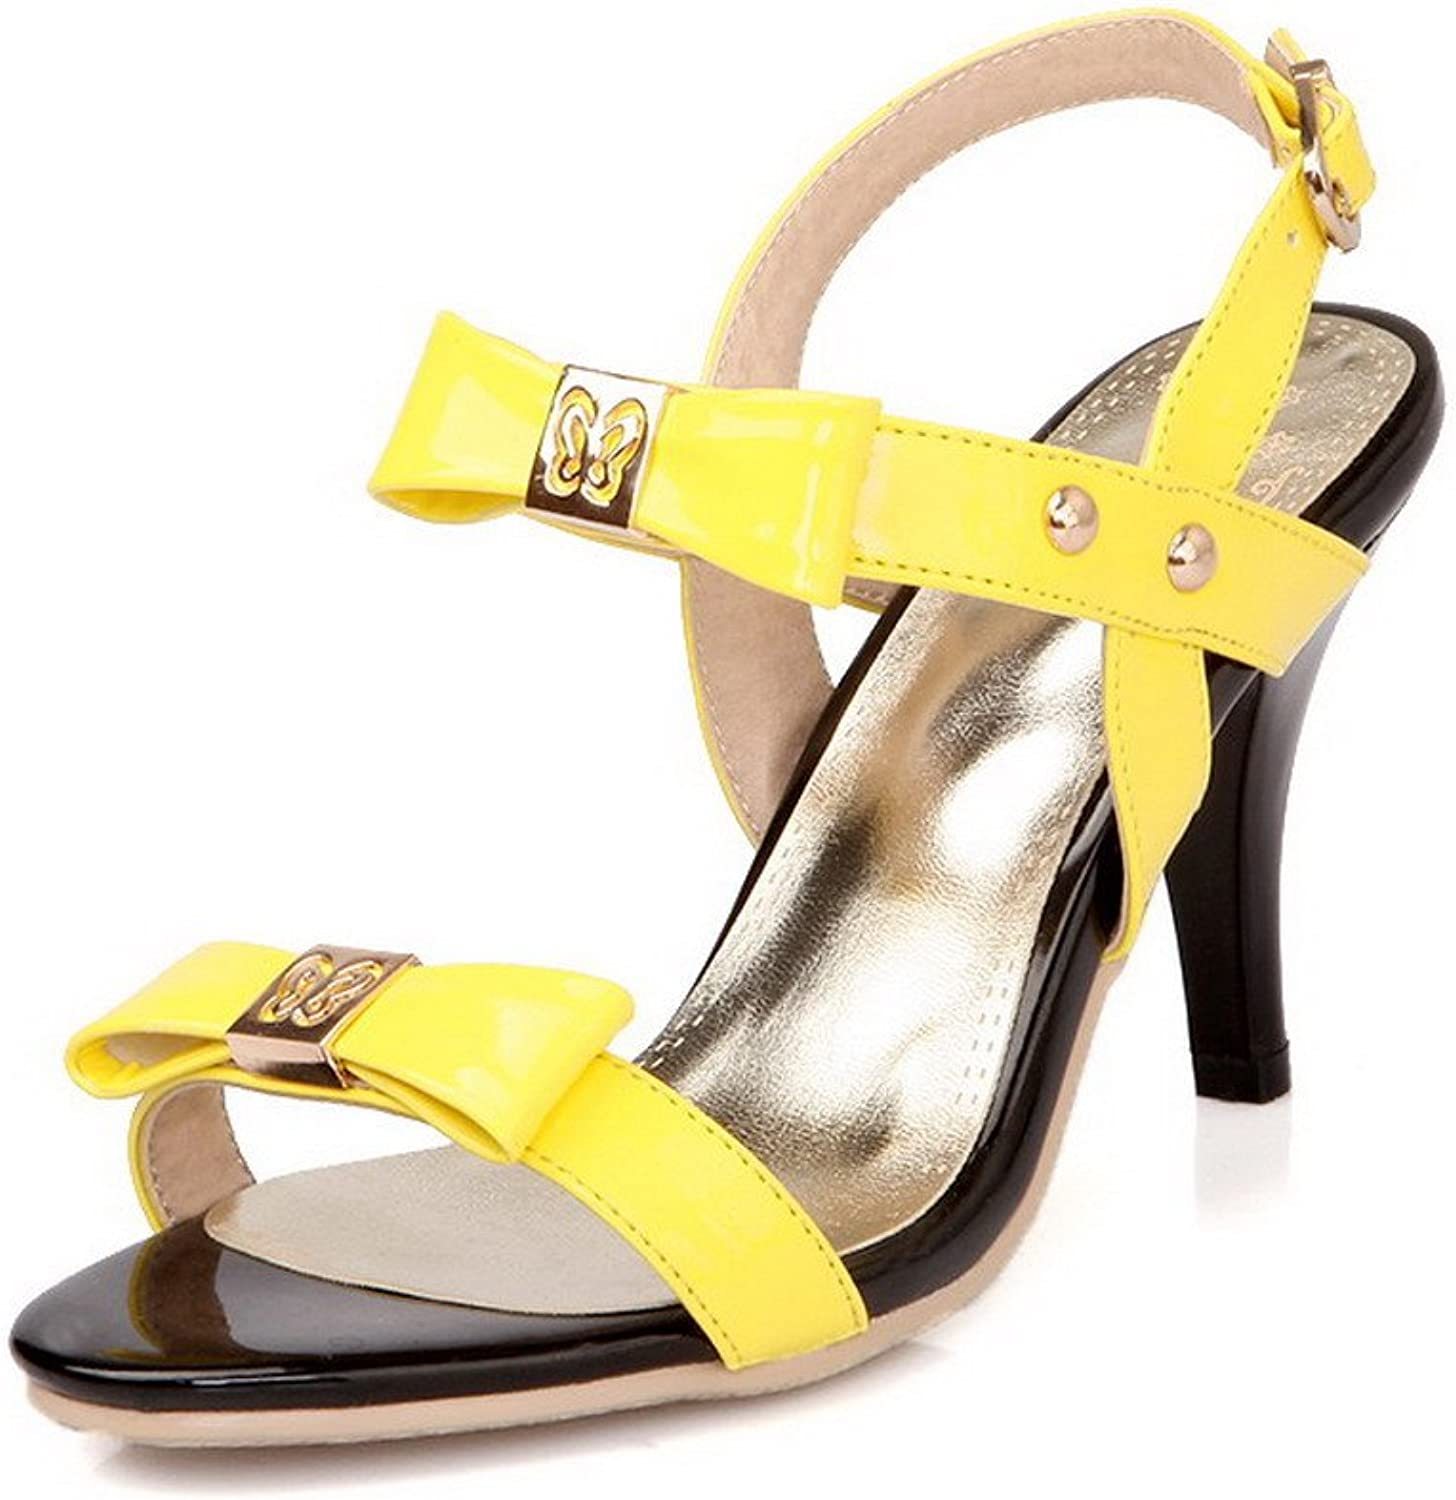 WeiPoot Women Open Toe High Heel PU Soft Material Assorted colors Sandals with Bows, Yellow, 7.5 B(M) US